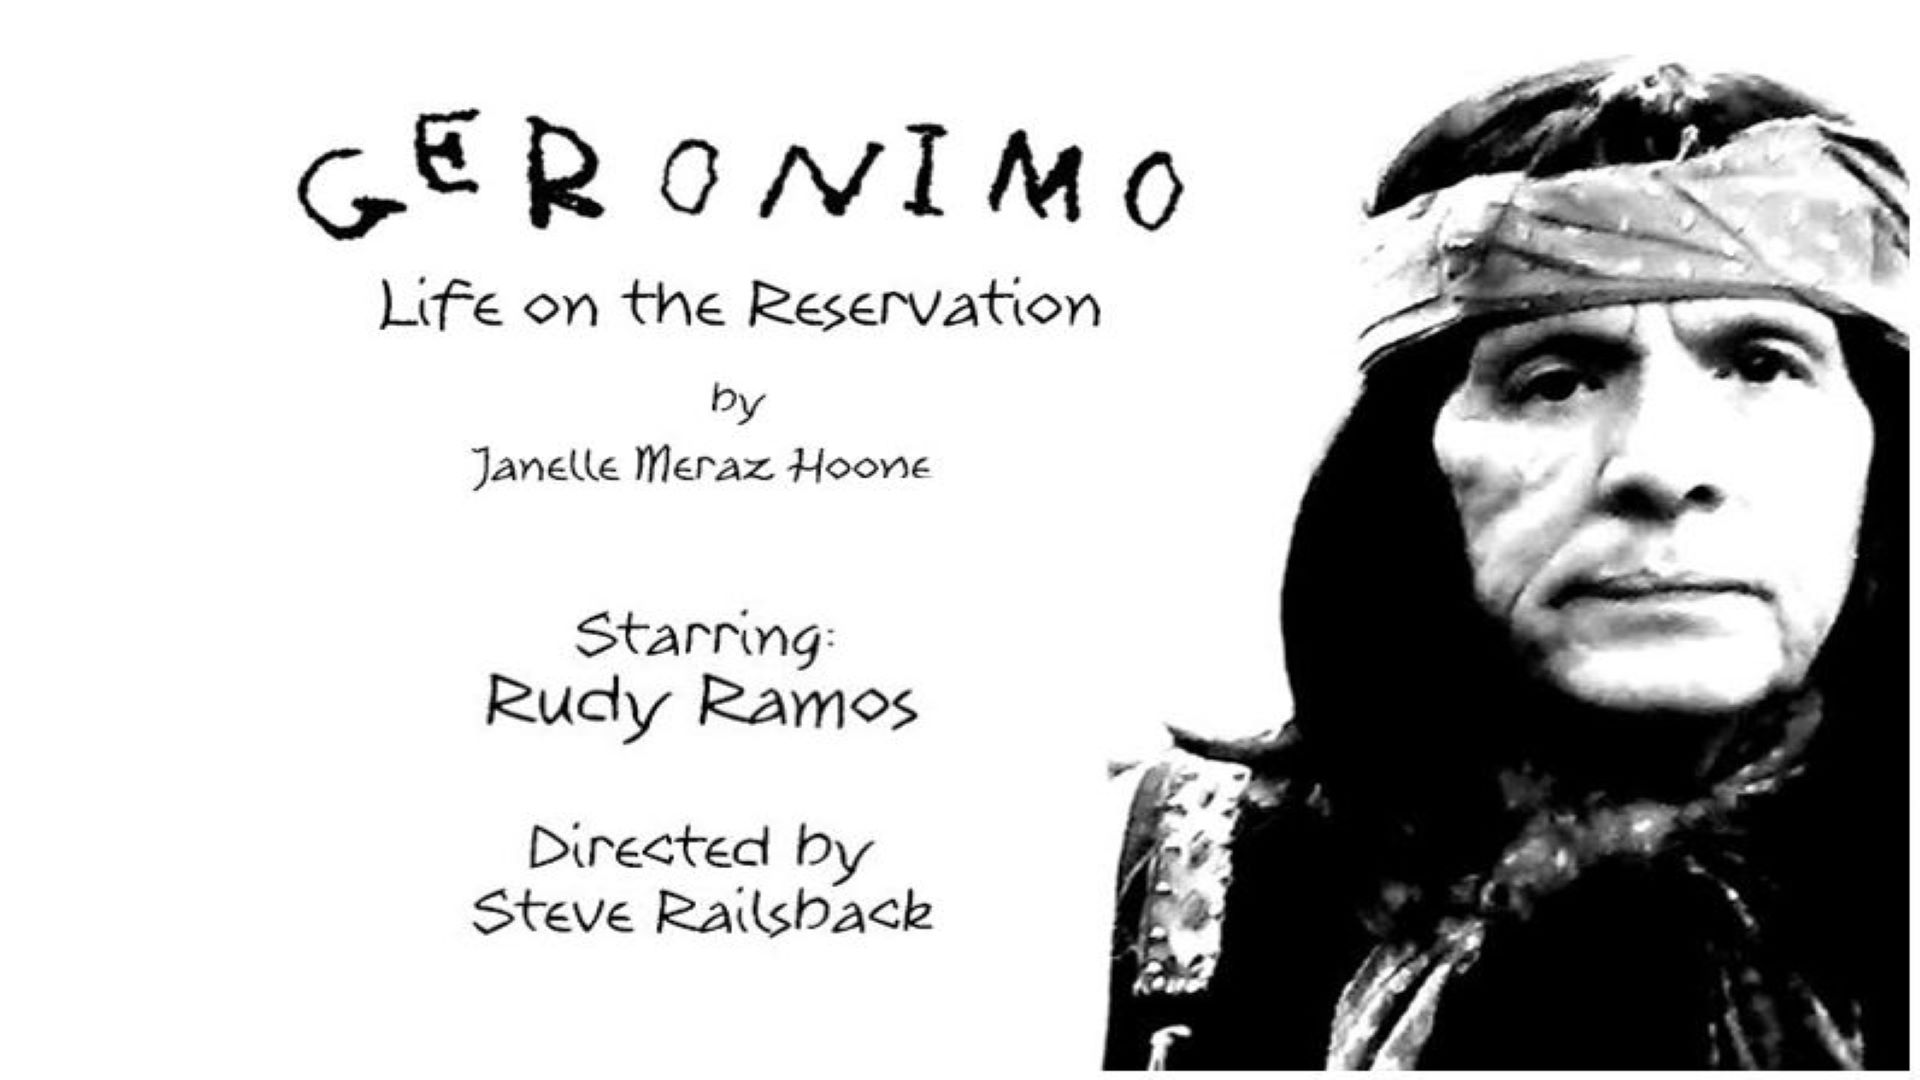 GERONIMO Life on the Reservation Feb 4 @ 7pm PST